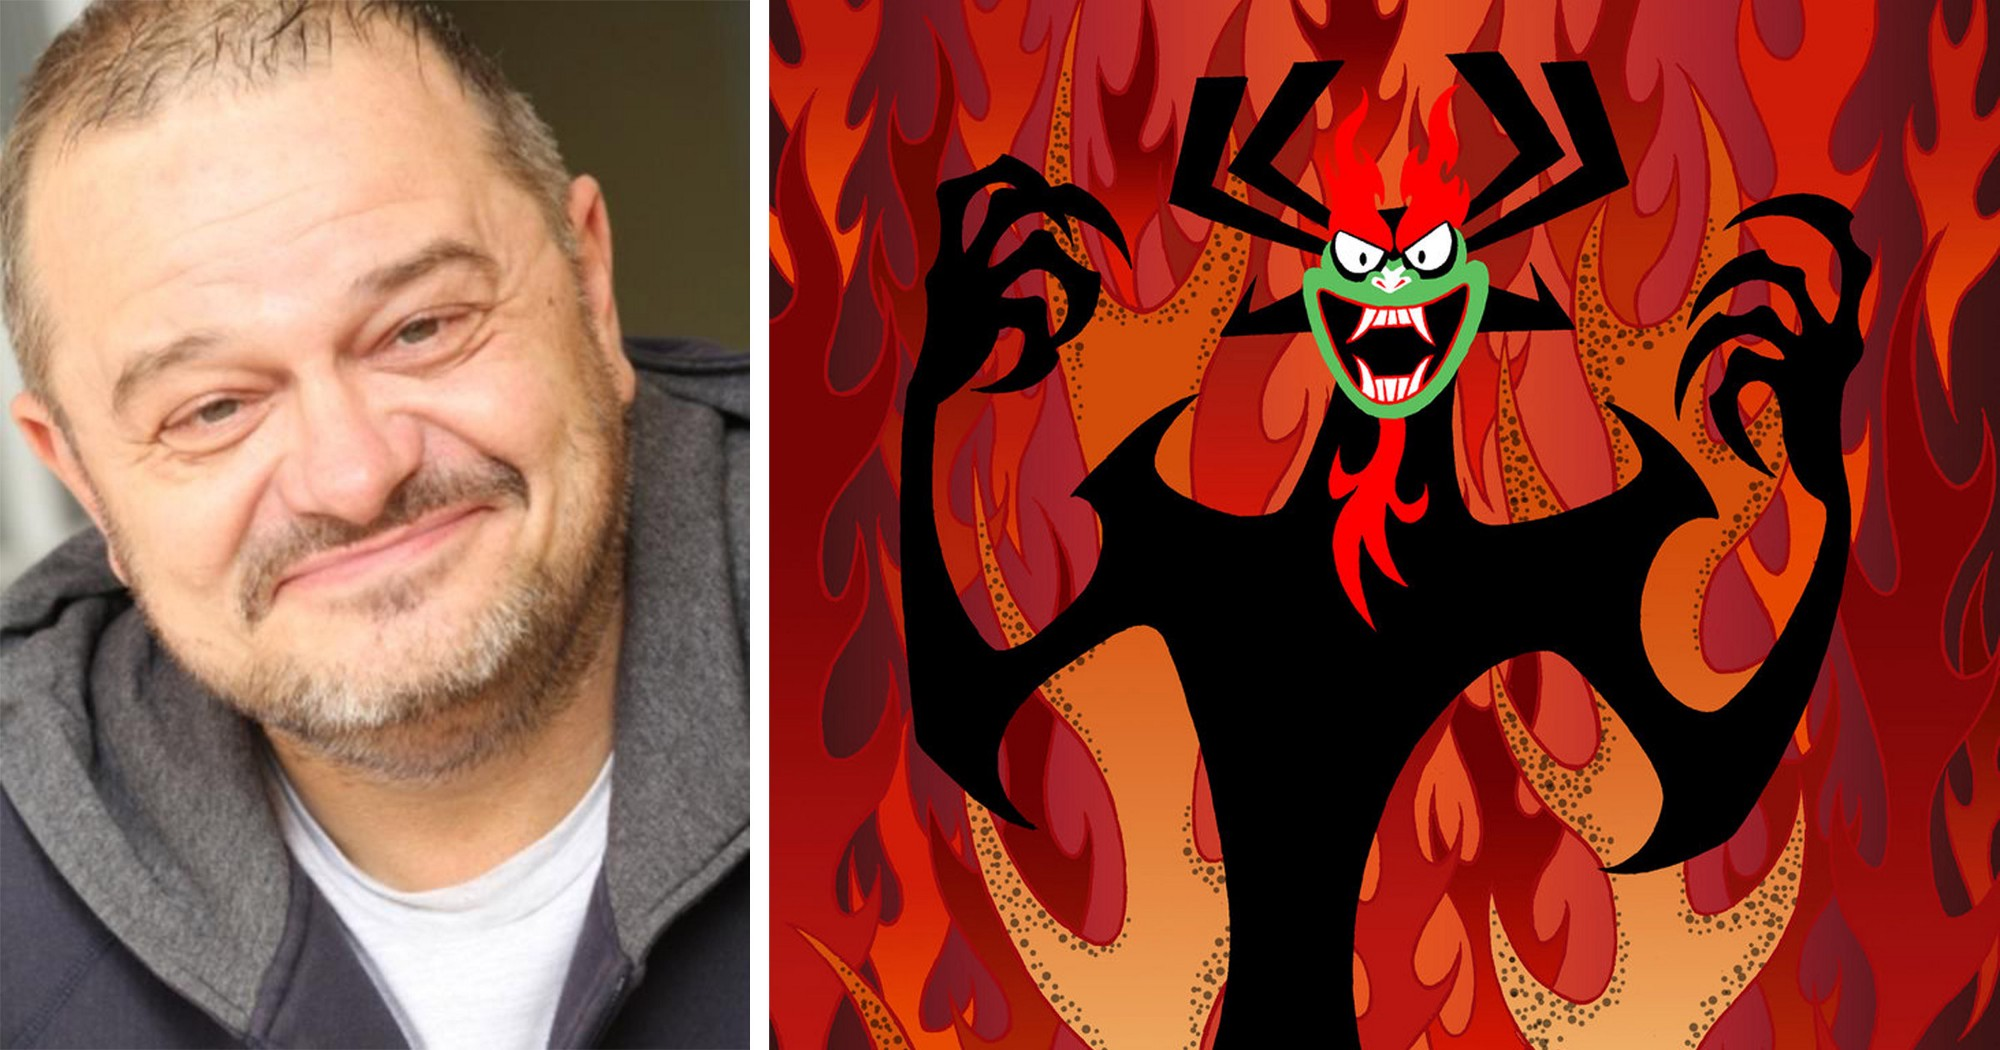 The new voice actor responsible for Aku on 'Samurai Jack' talks about what  it's like to take over for Mako Iwamatsu.